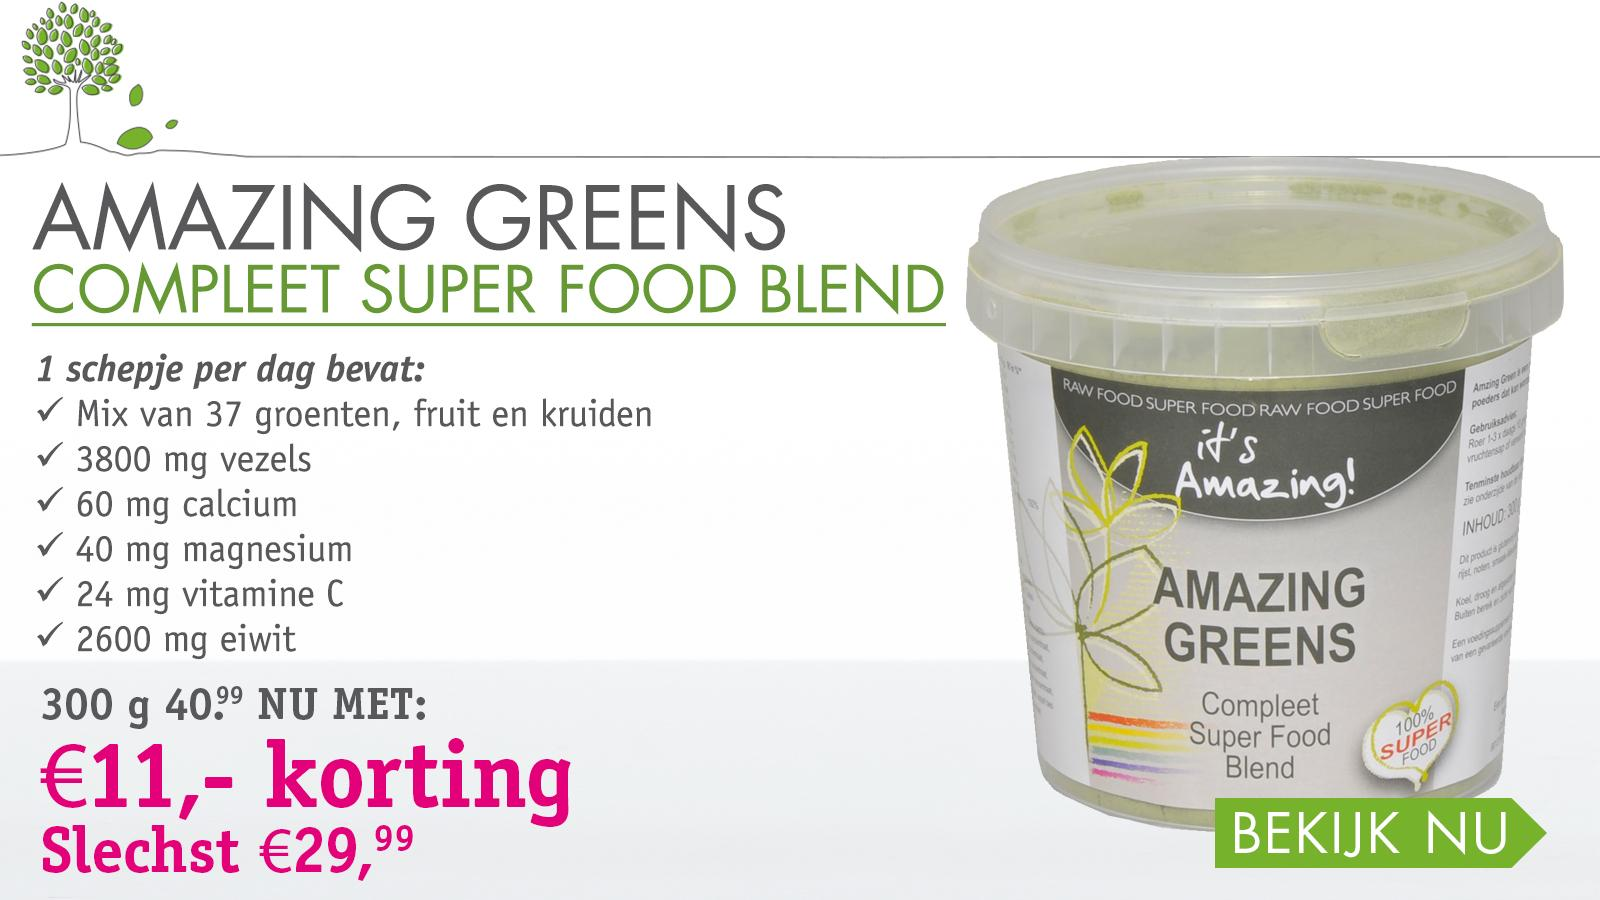 amazing greens-Week-5-GW-BANNER-HOME-MAIN-1600x900-03